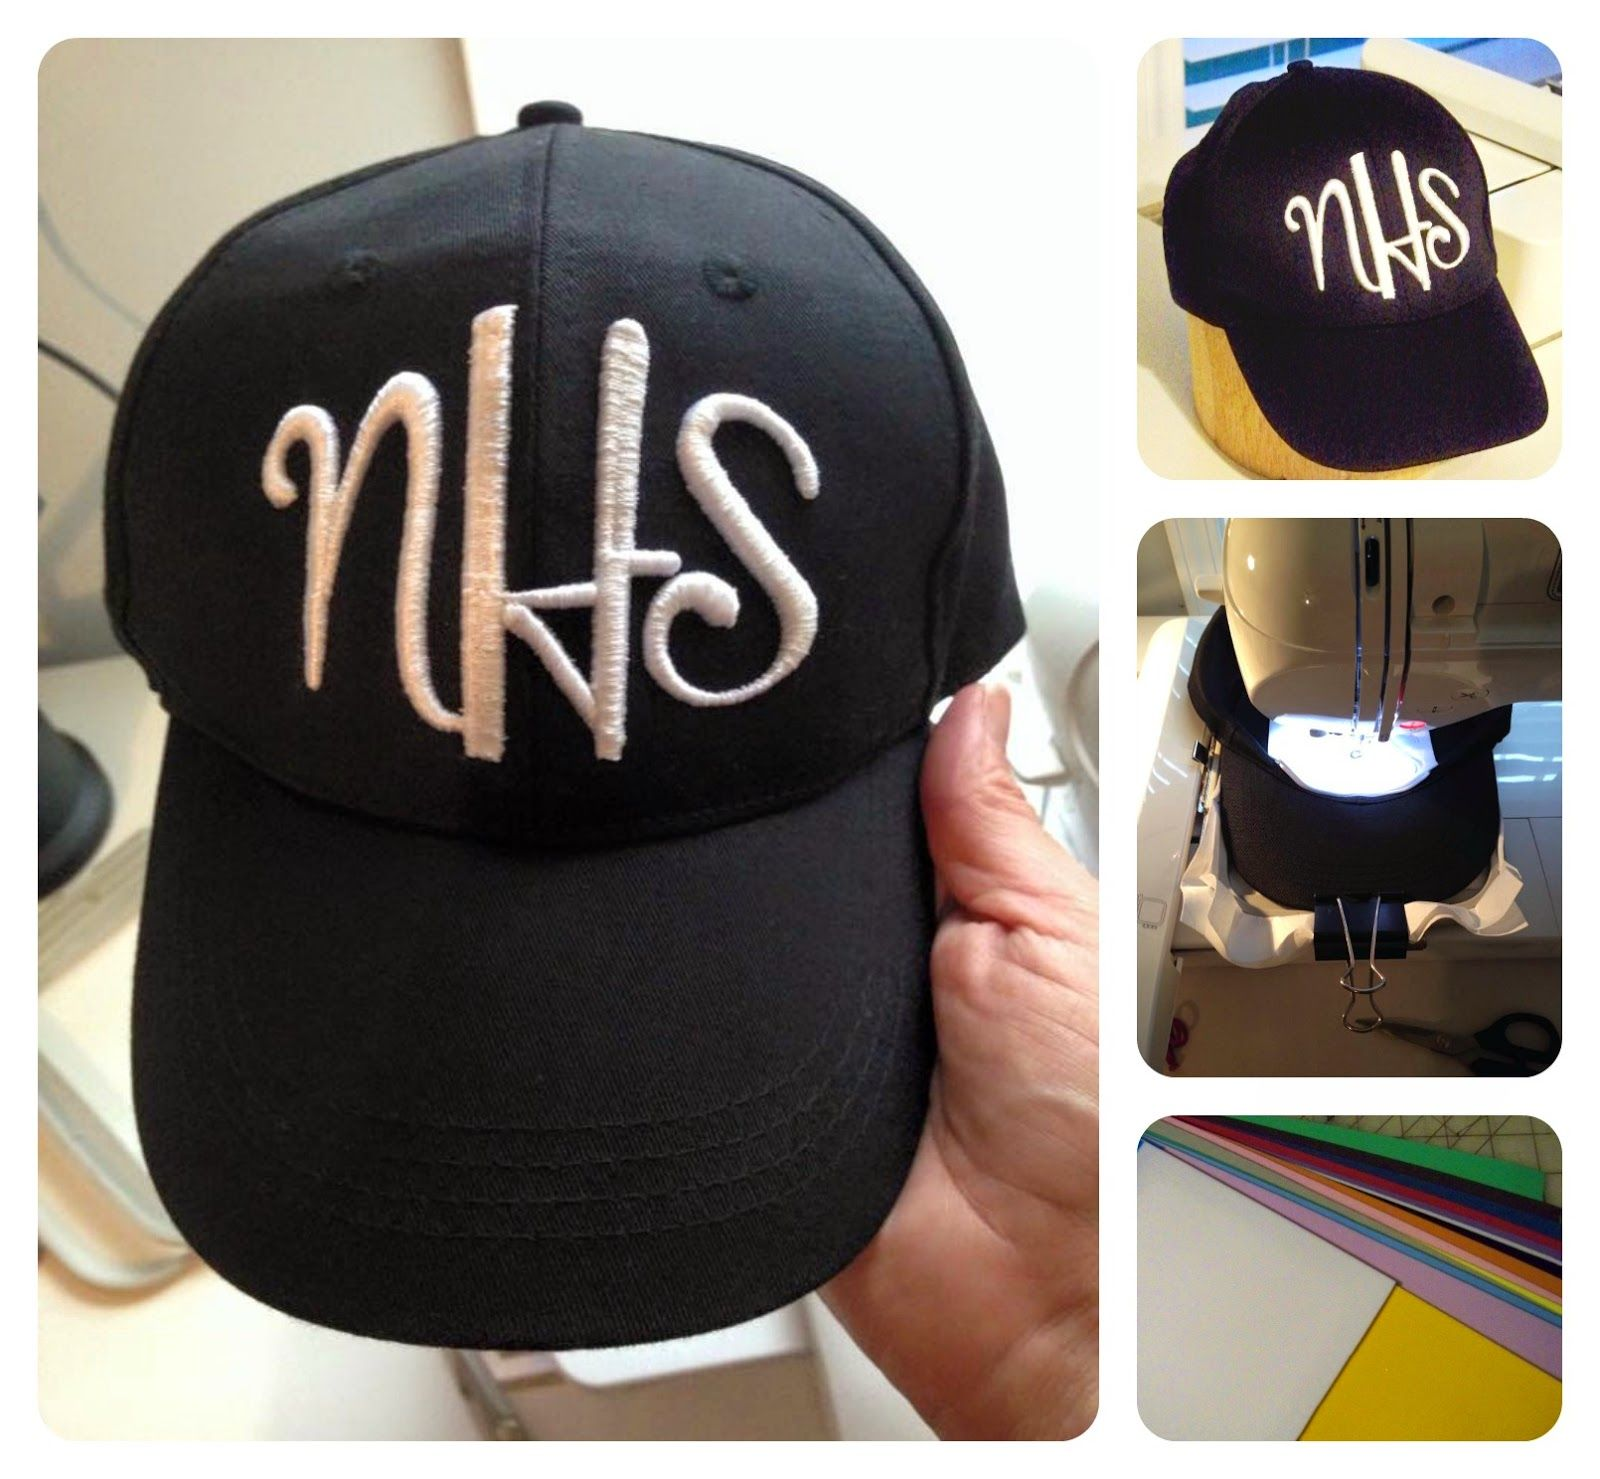 Baseball Cap Embroidery Using Embroidery Foam Machine Embroidery Projects Machine Embroidery Sewing Embroidery Designs